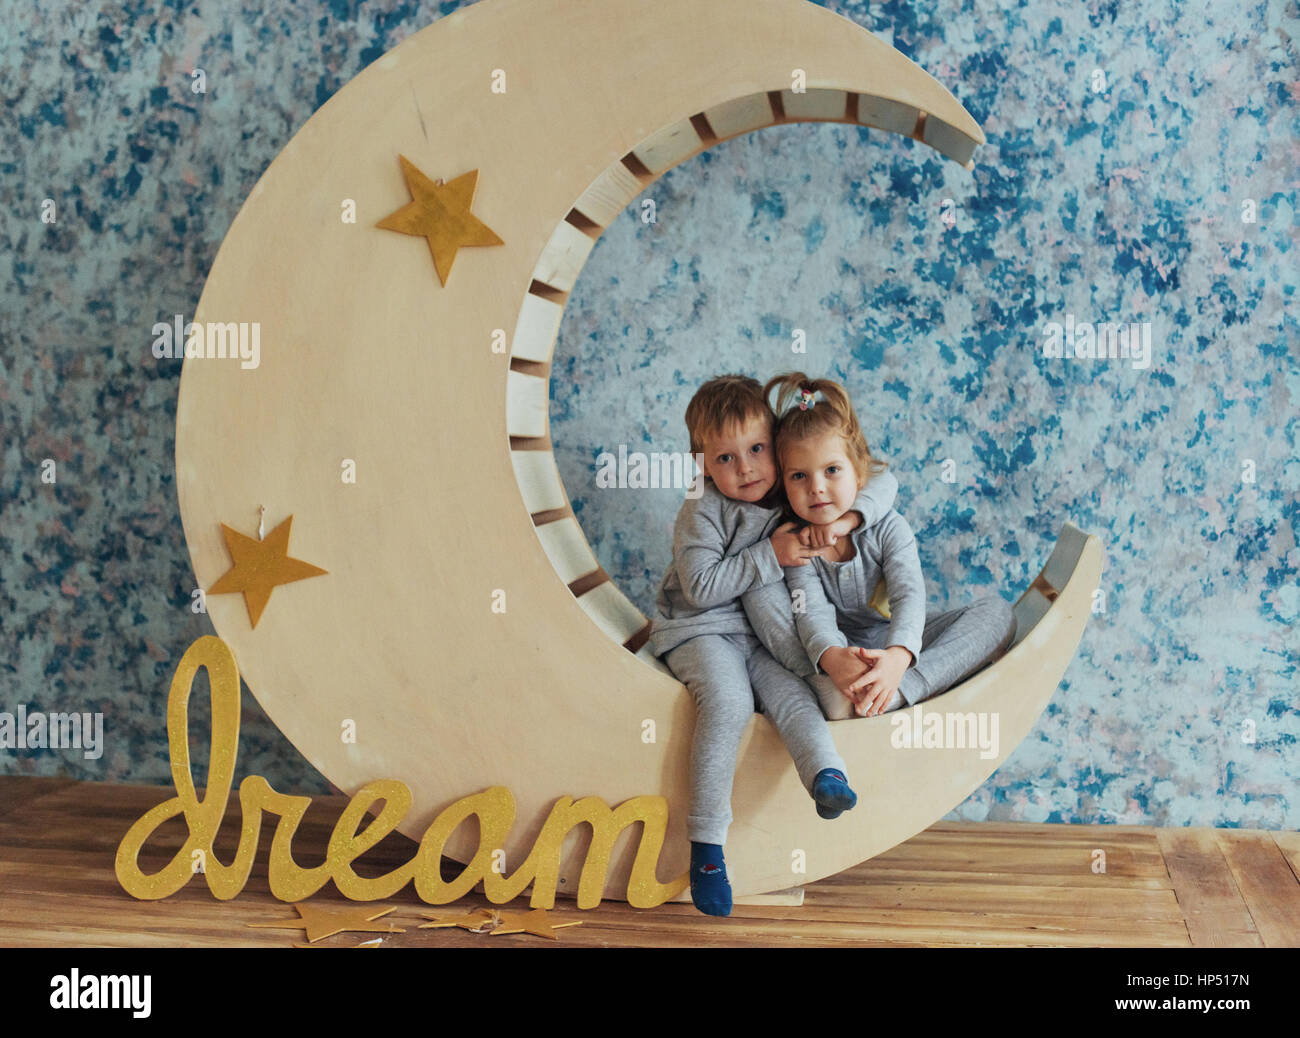 The concept of sleep time. - Stock Image